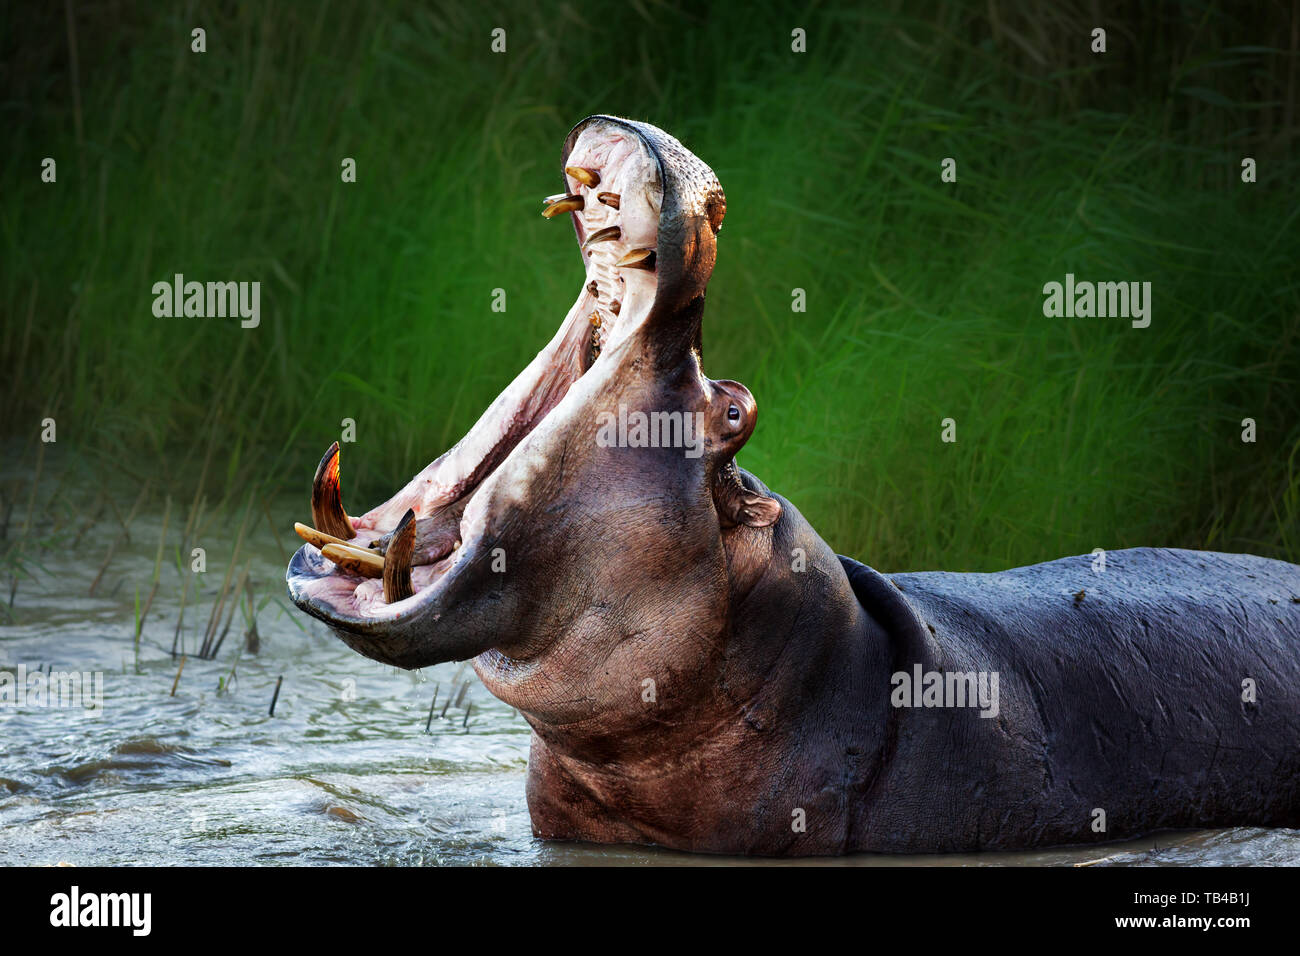 Angry hippopotamus displaying dominance in the water with a wide open mouth. Hippopotamus amphibius - Stock Image